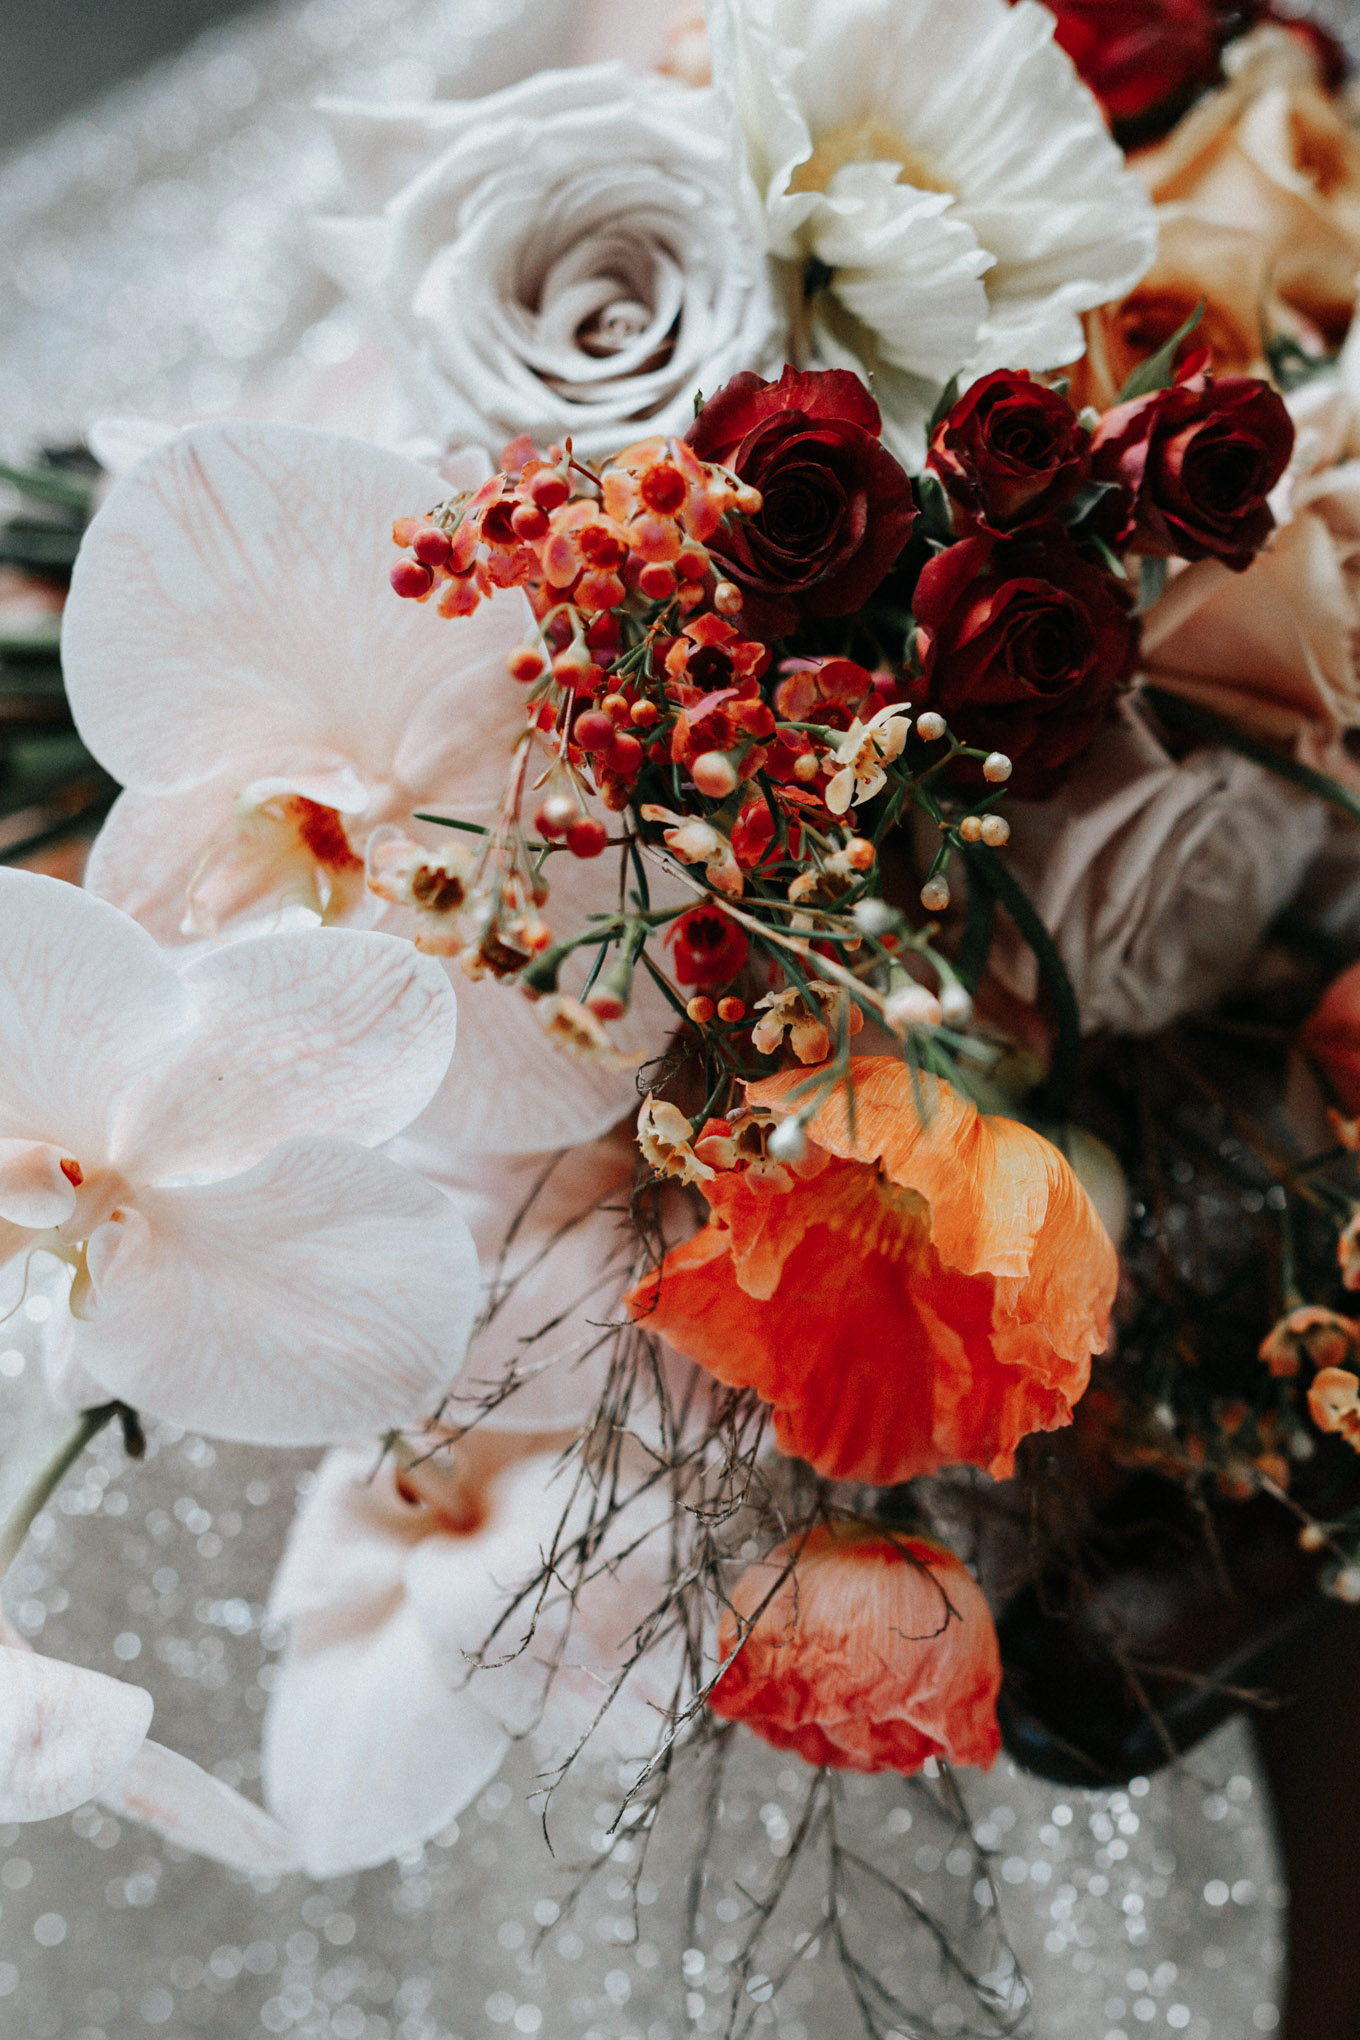 Categories: Inspiration-Spring Lovers